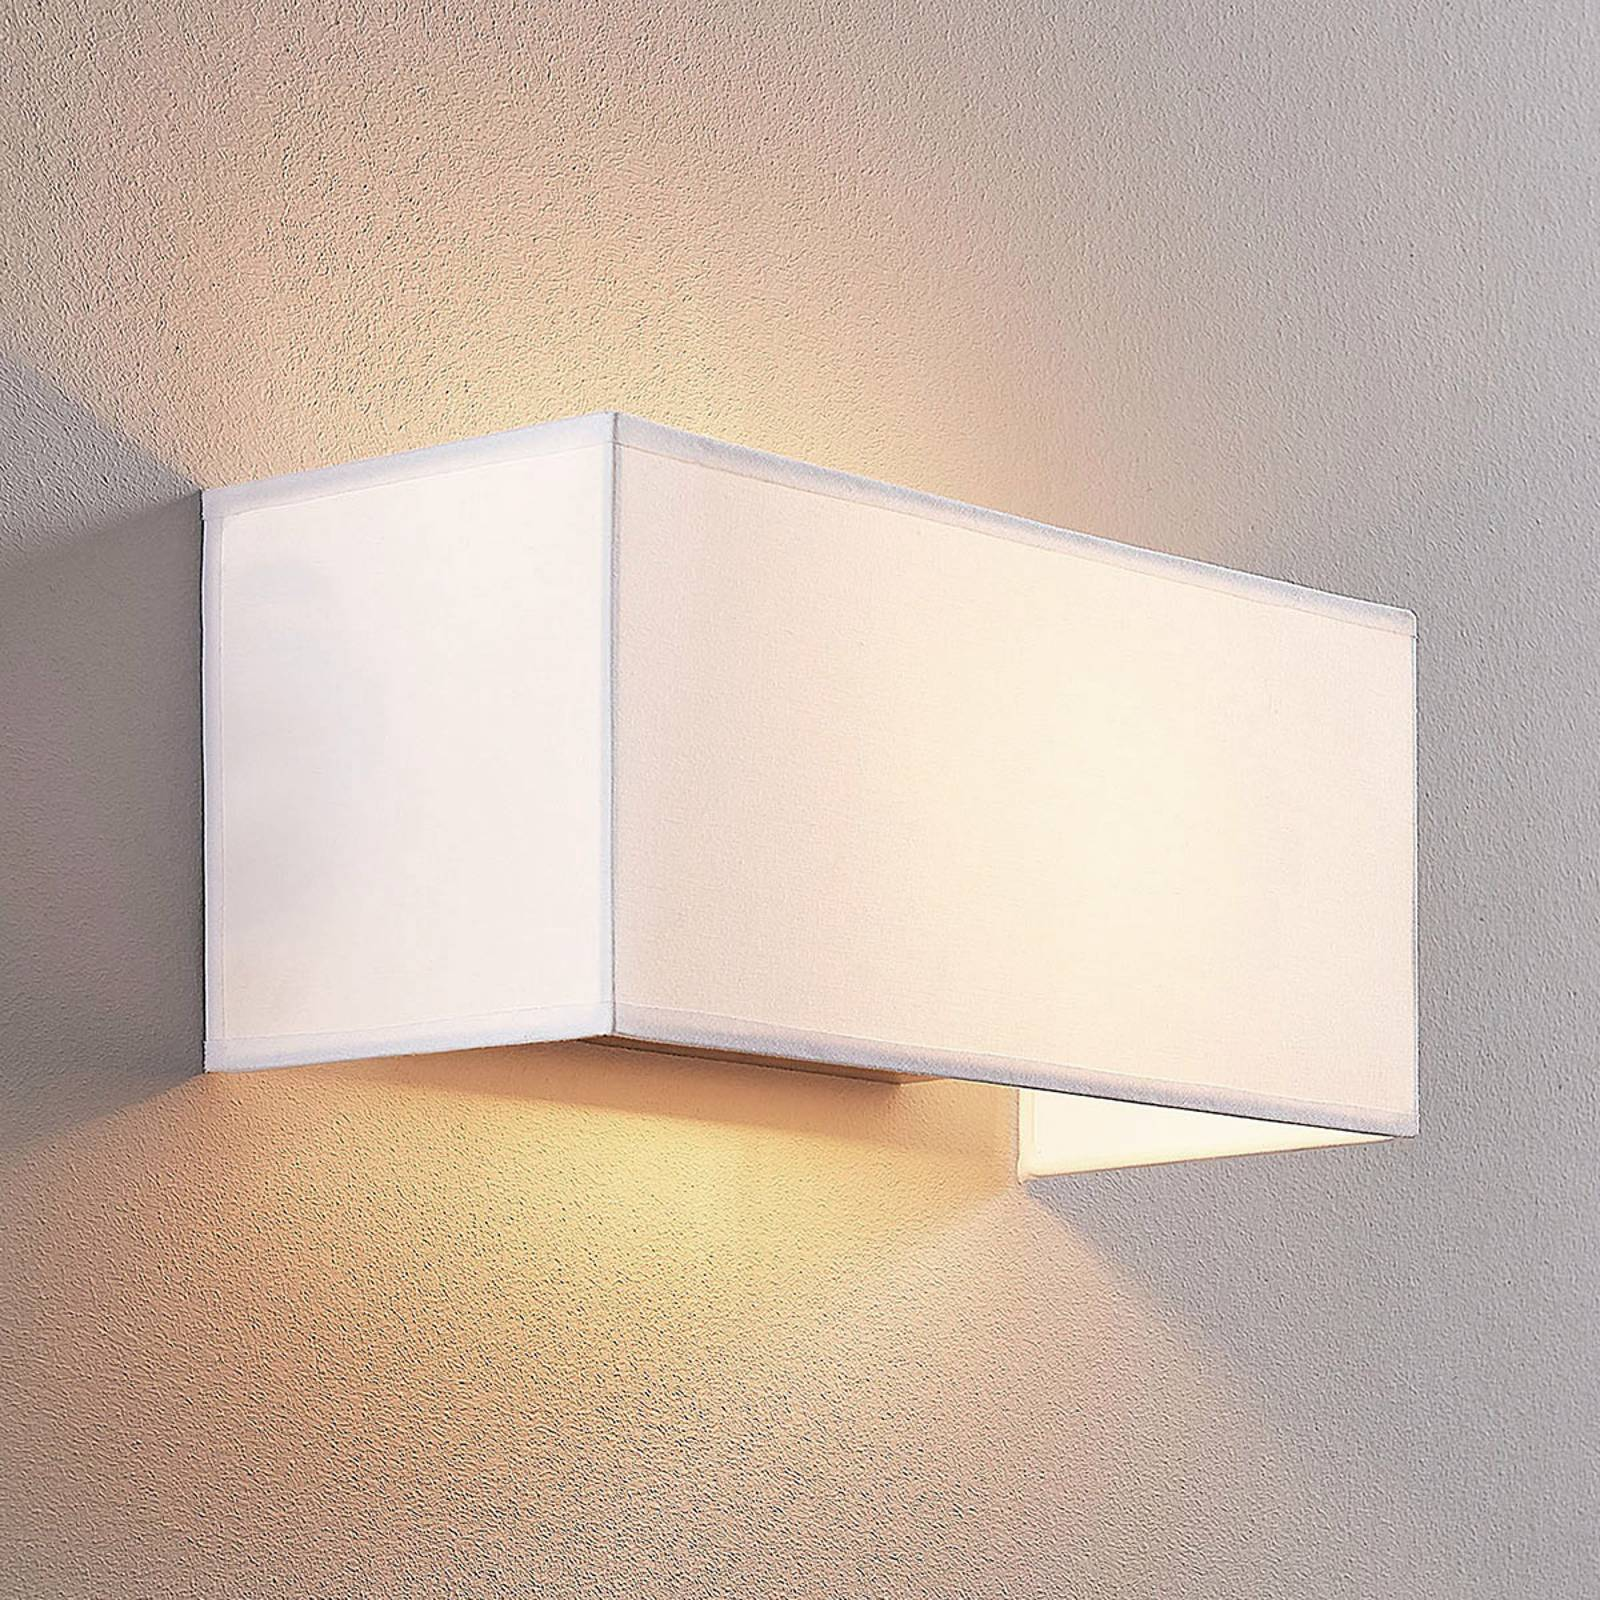 Adea fabric wall lamp, 30 cm, angular, white from Lindby